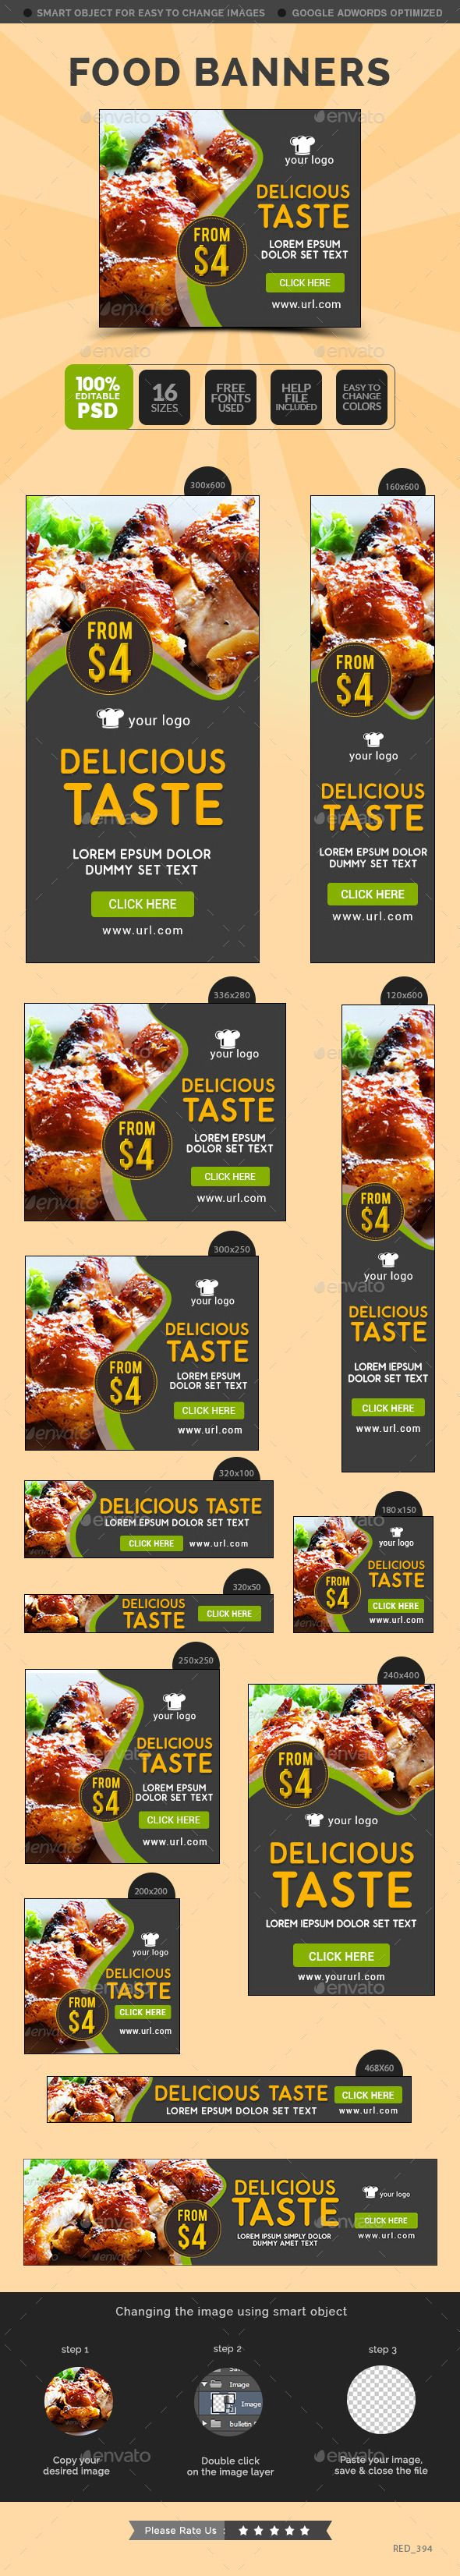 Food Banners Template #design Download: http://graphicriver.net/item/food-banners/12190783?ref=ksioks